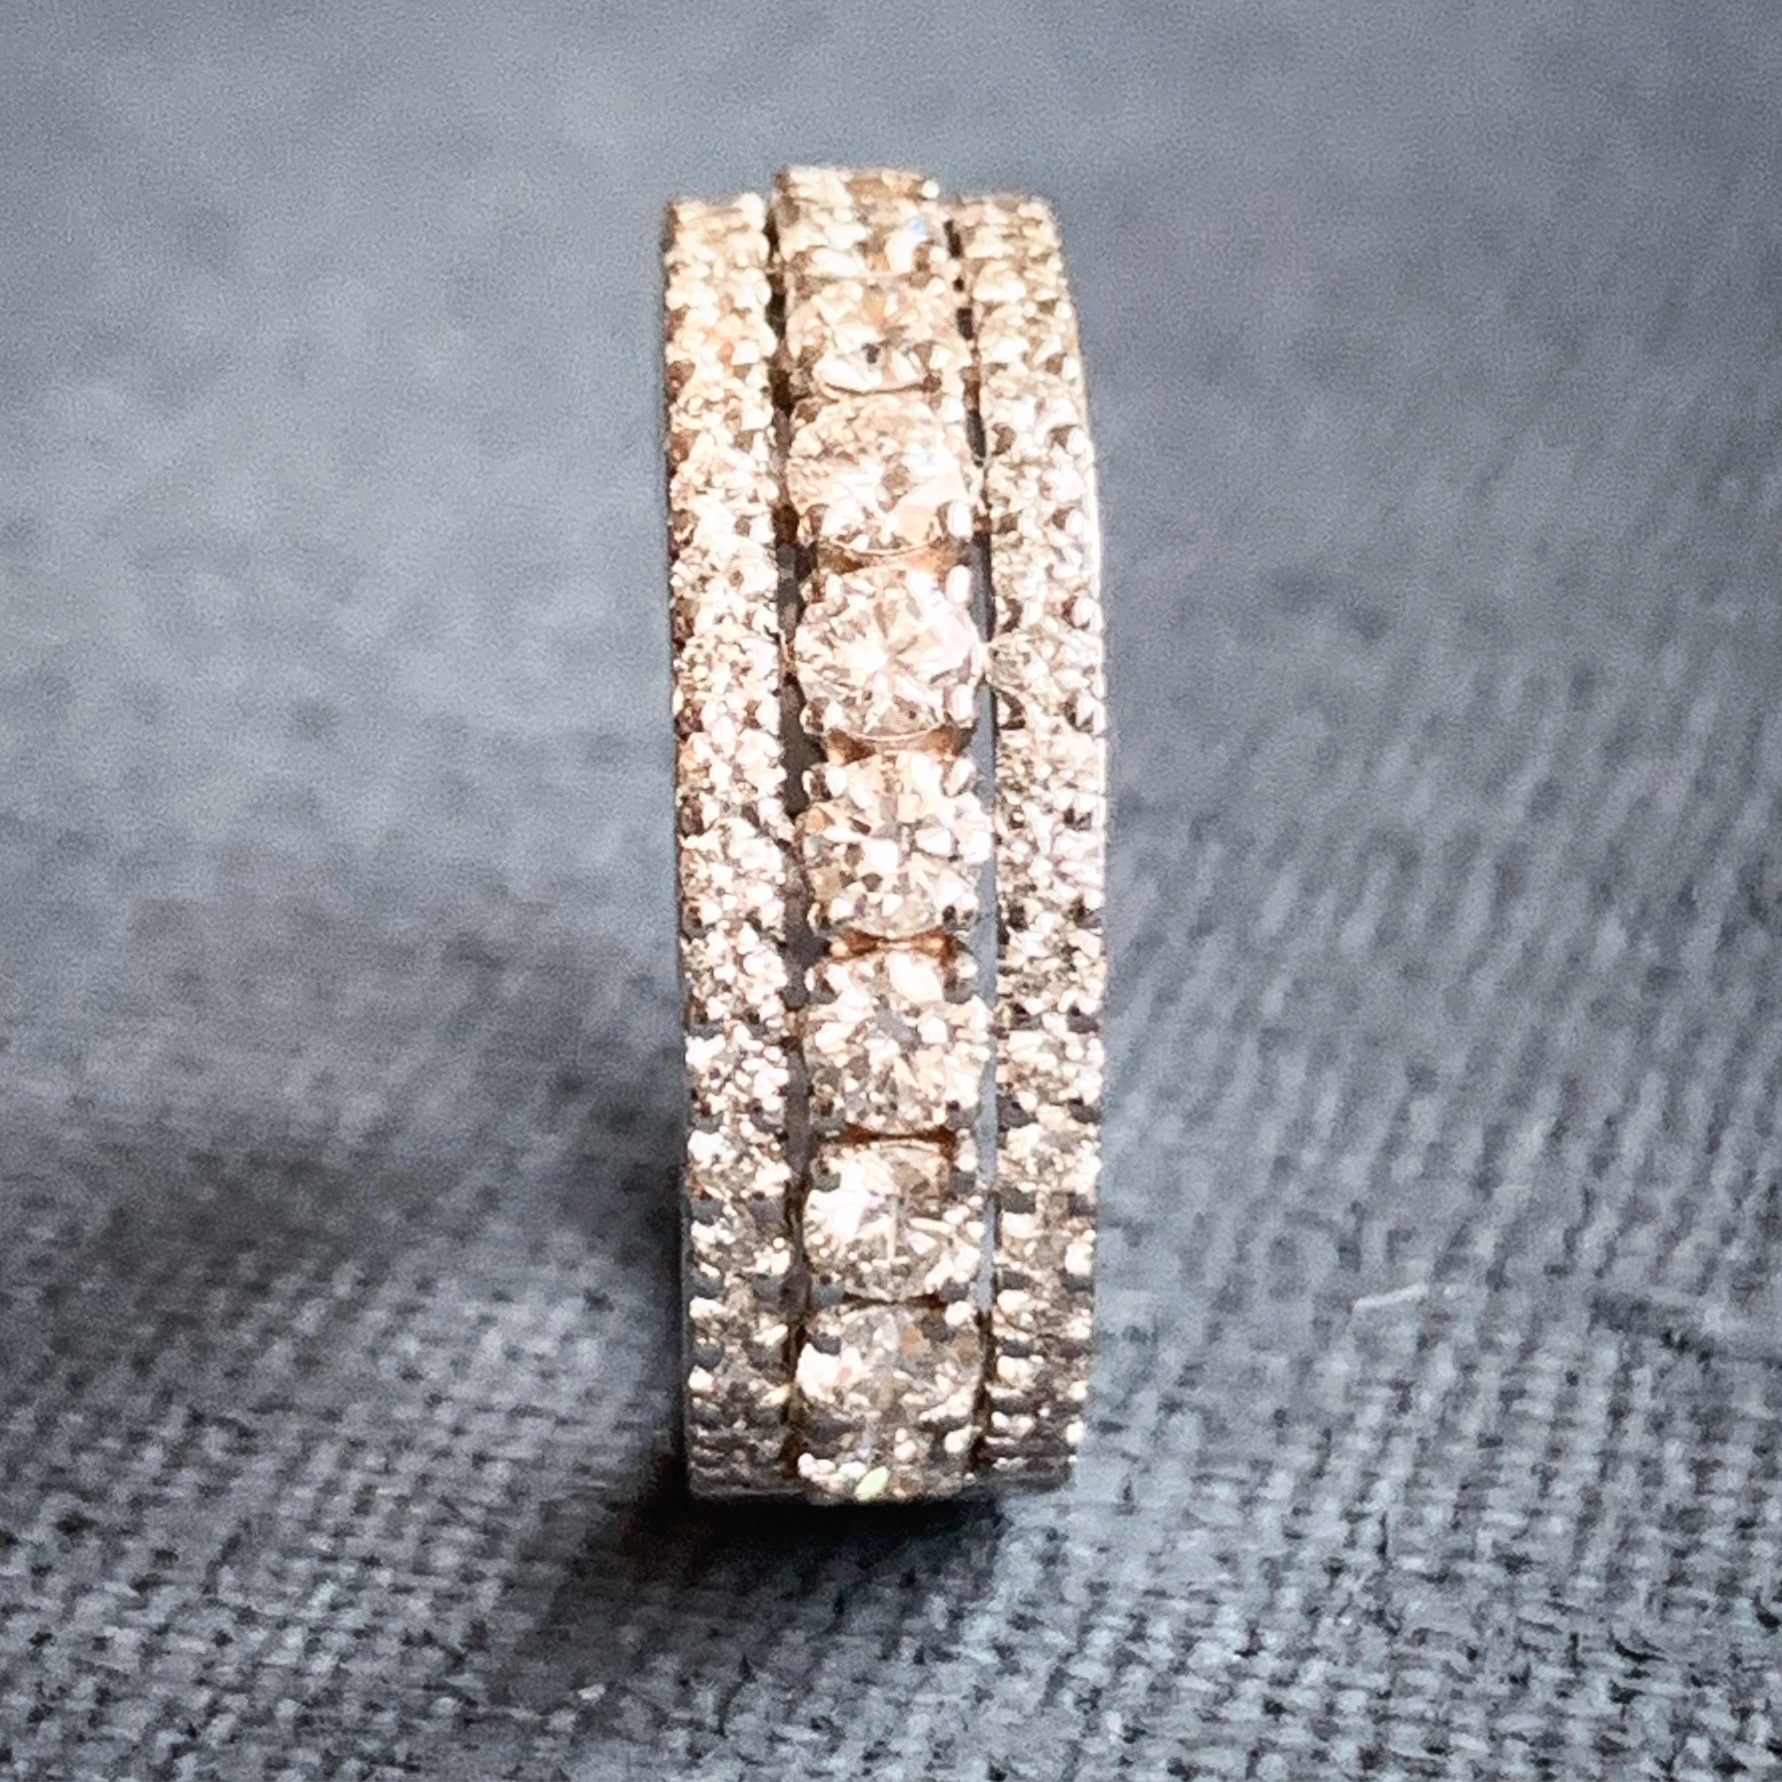 Eternity ring, with 3 bangs of brilliant cut diamonds